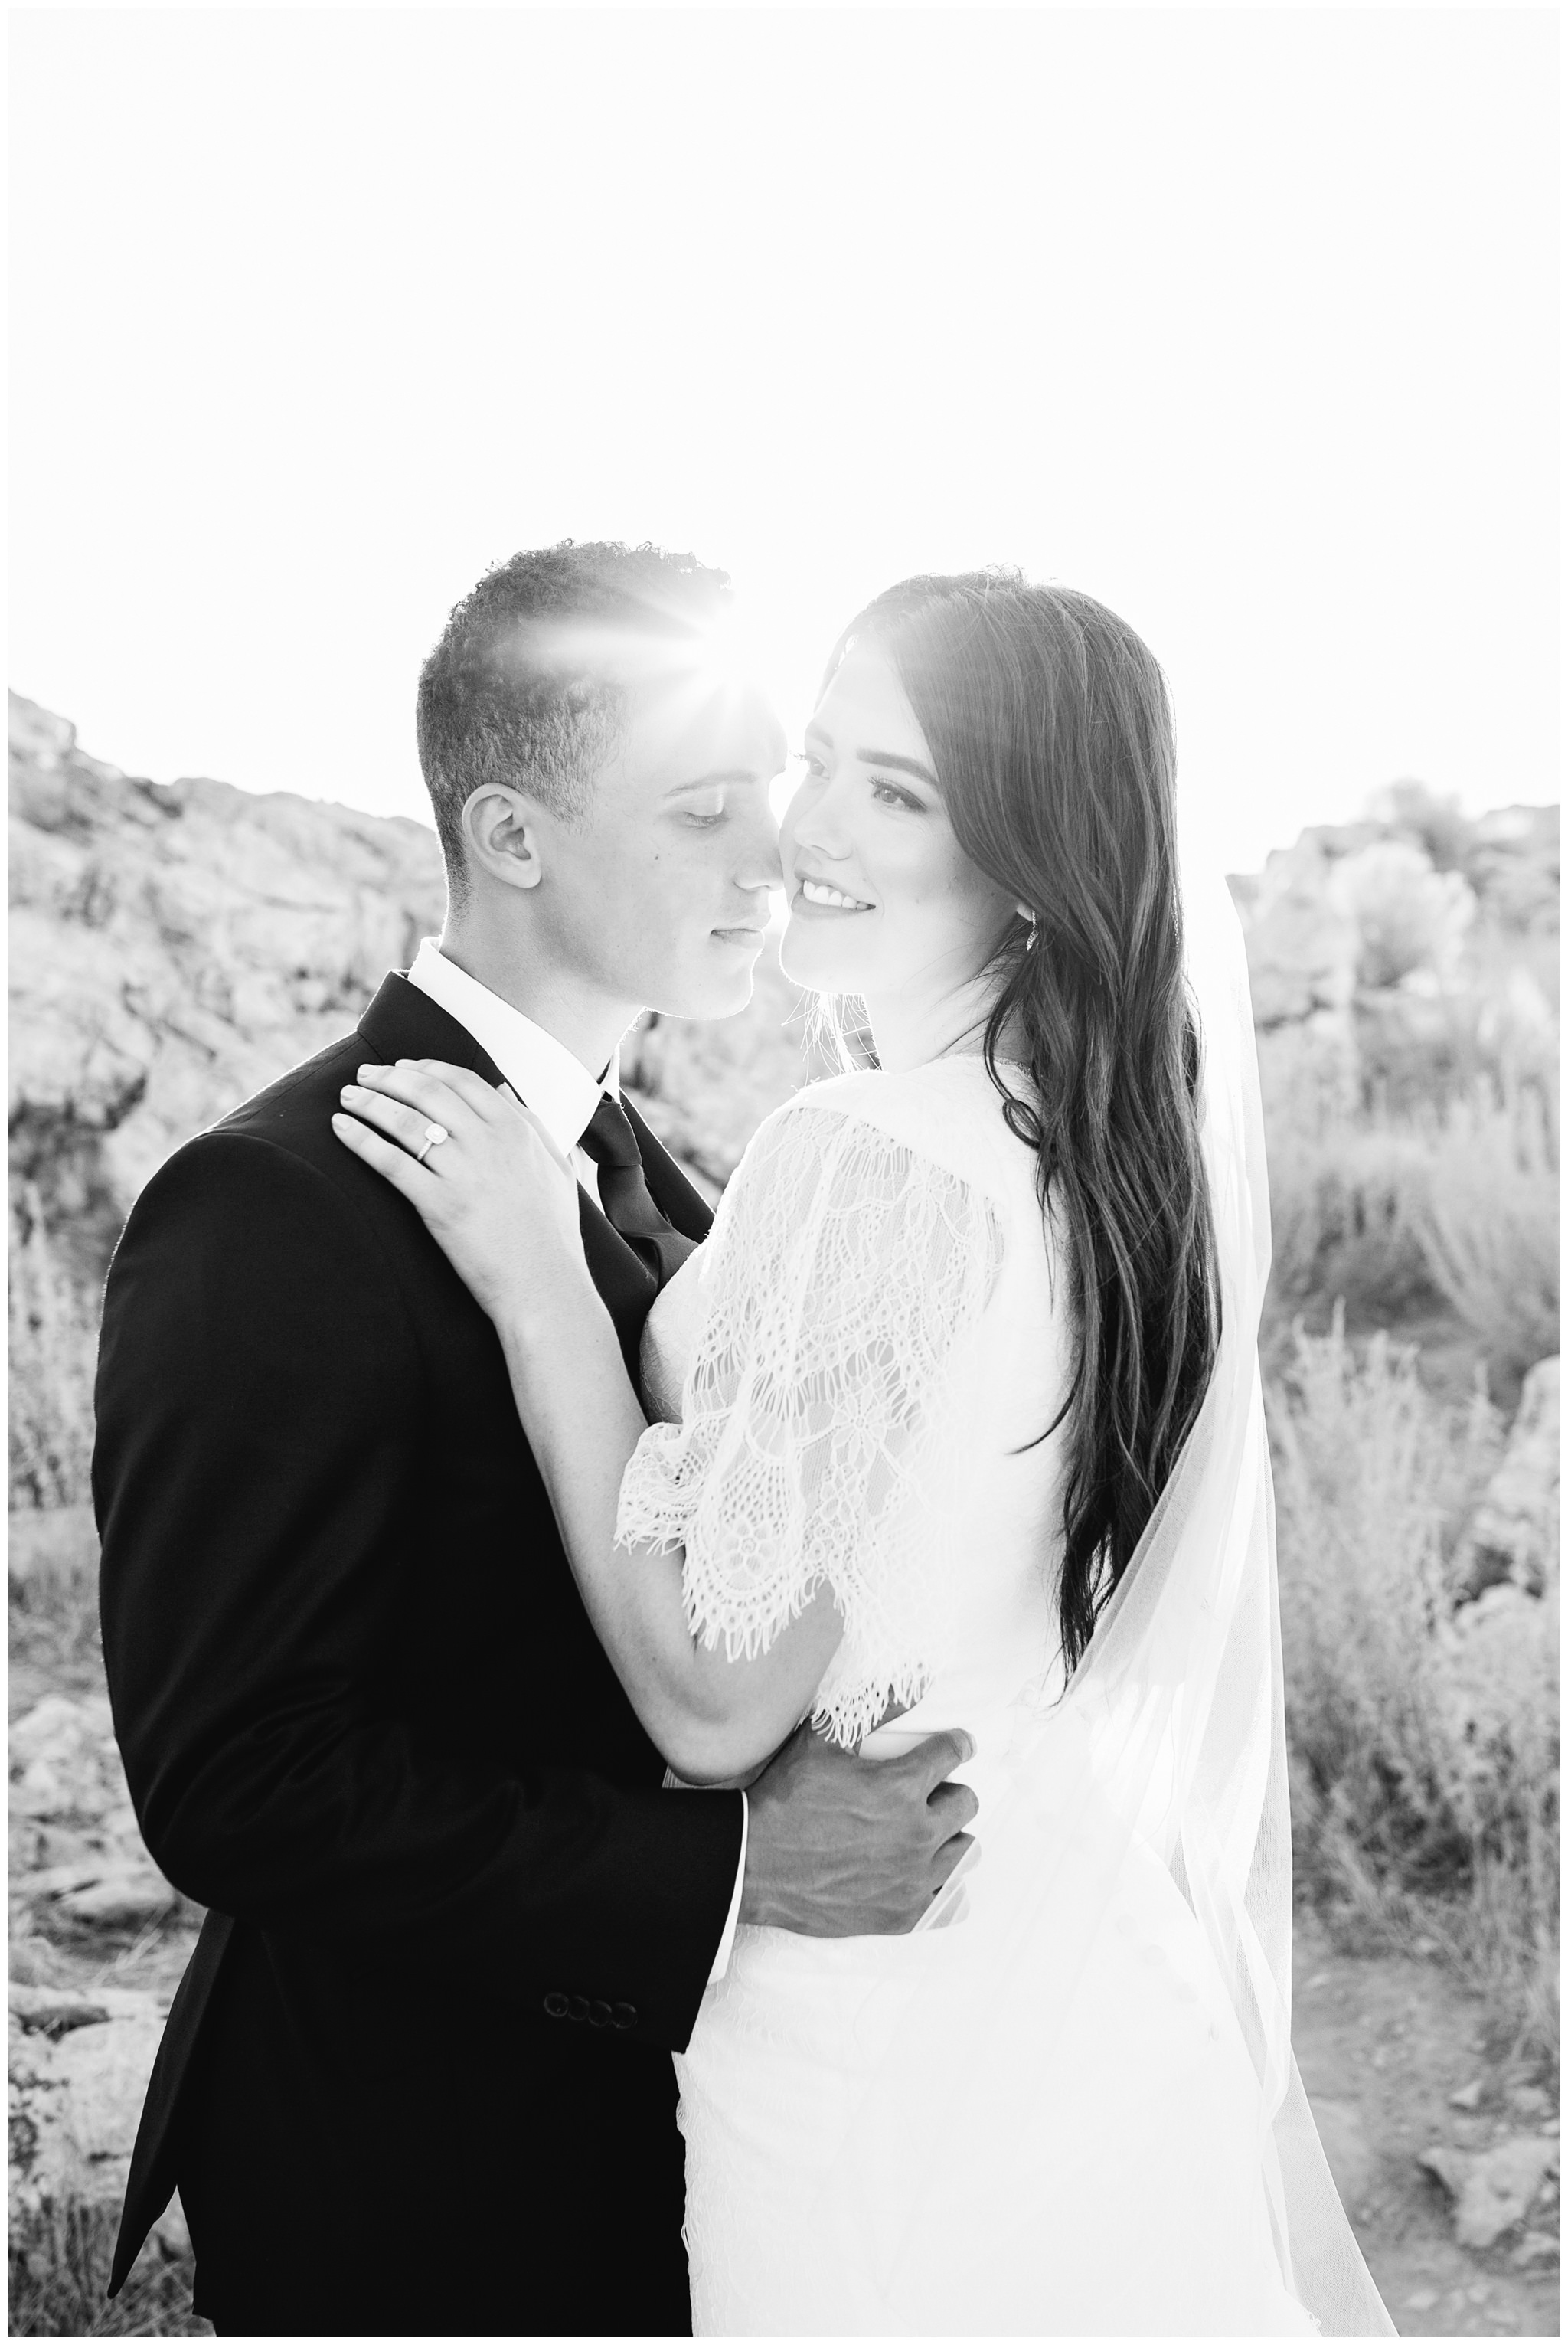 Groom tickling bride with his nose making her laugh for the wedding pictures in Utah